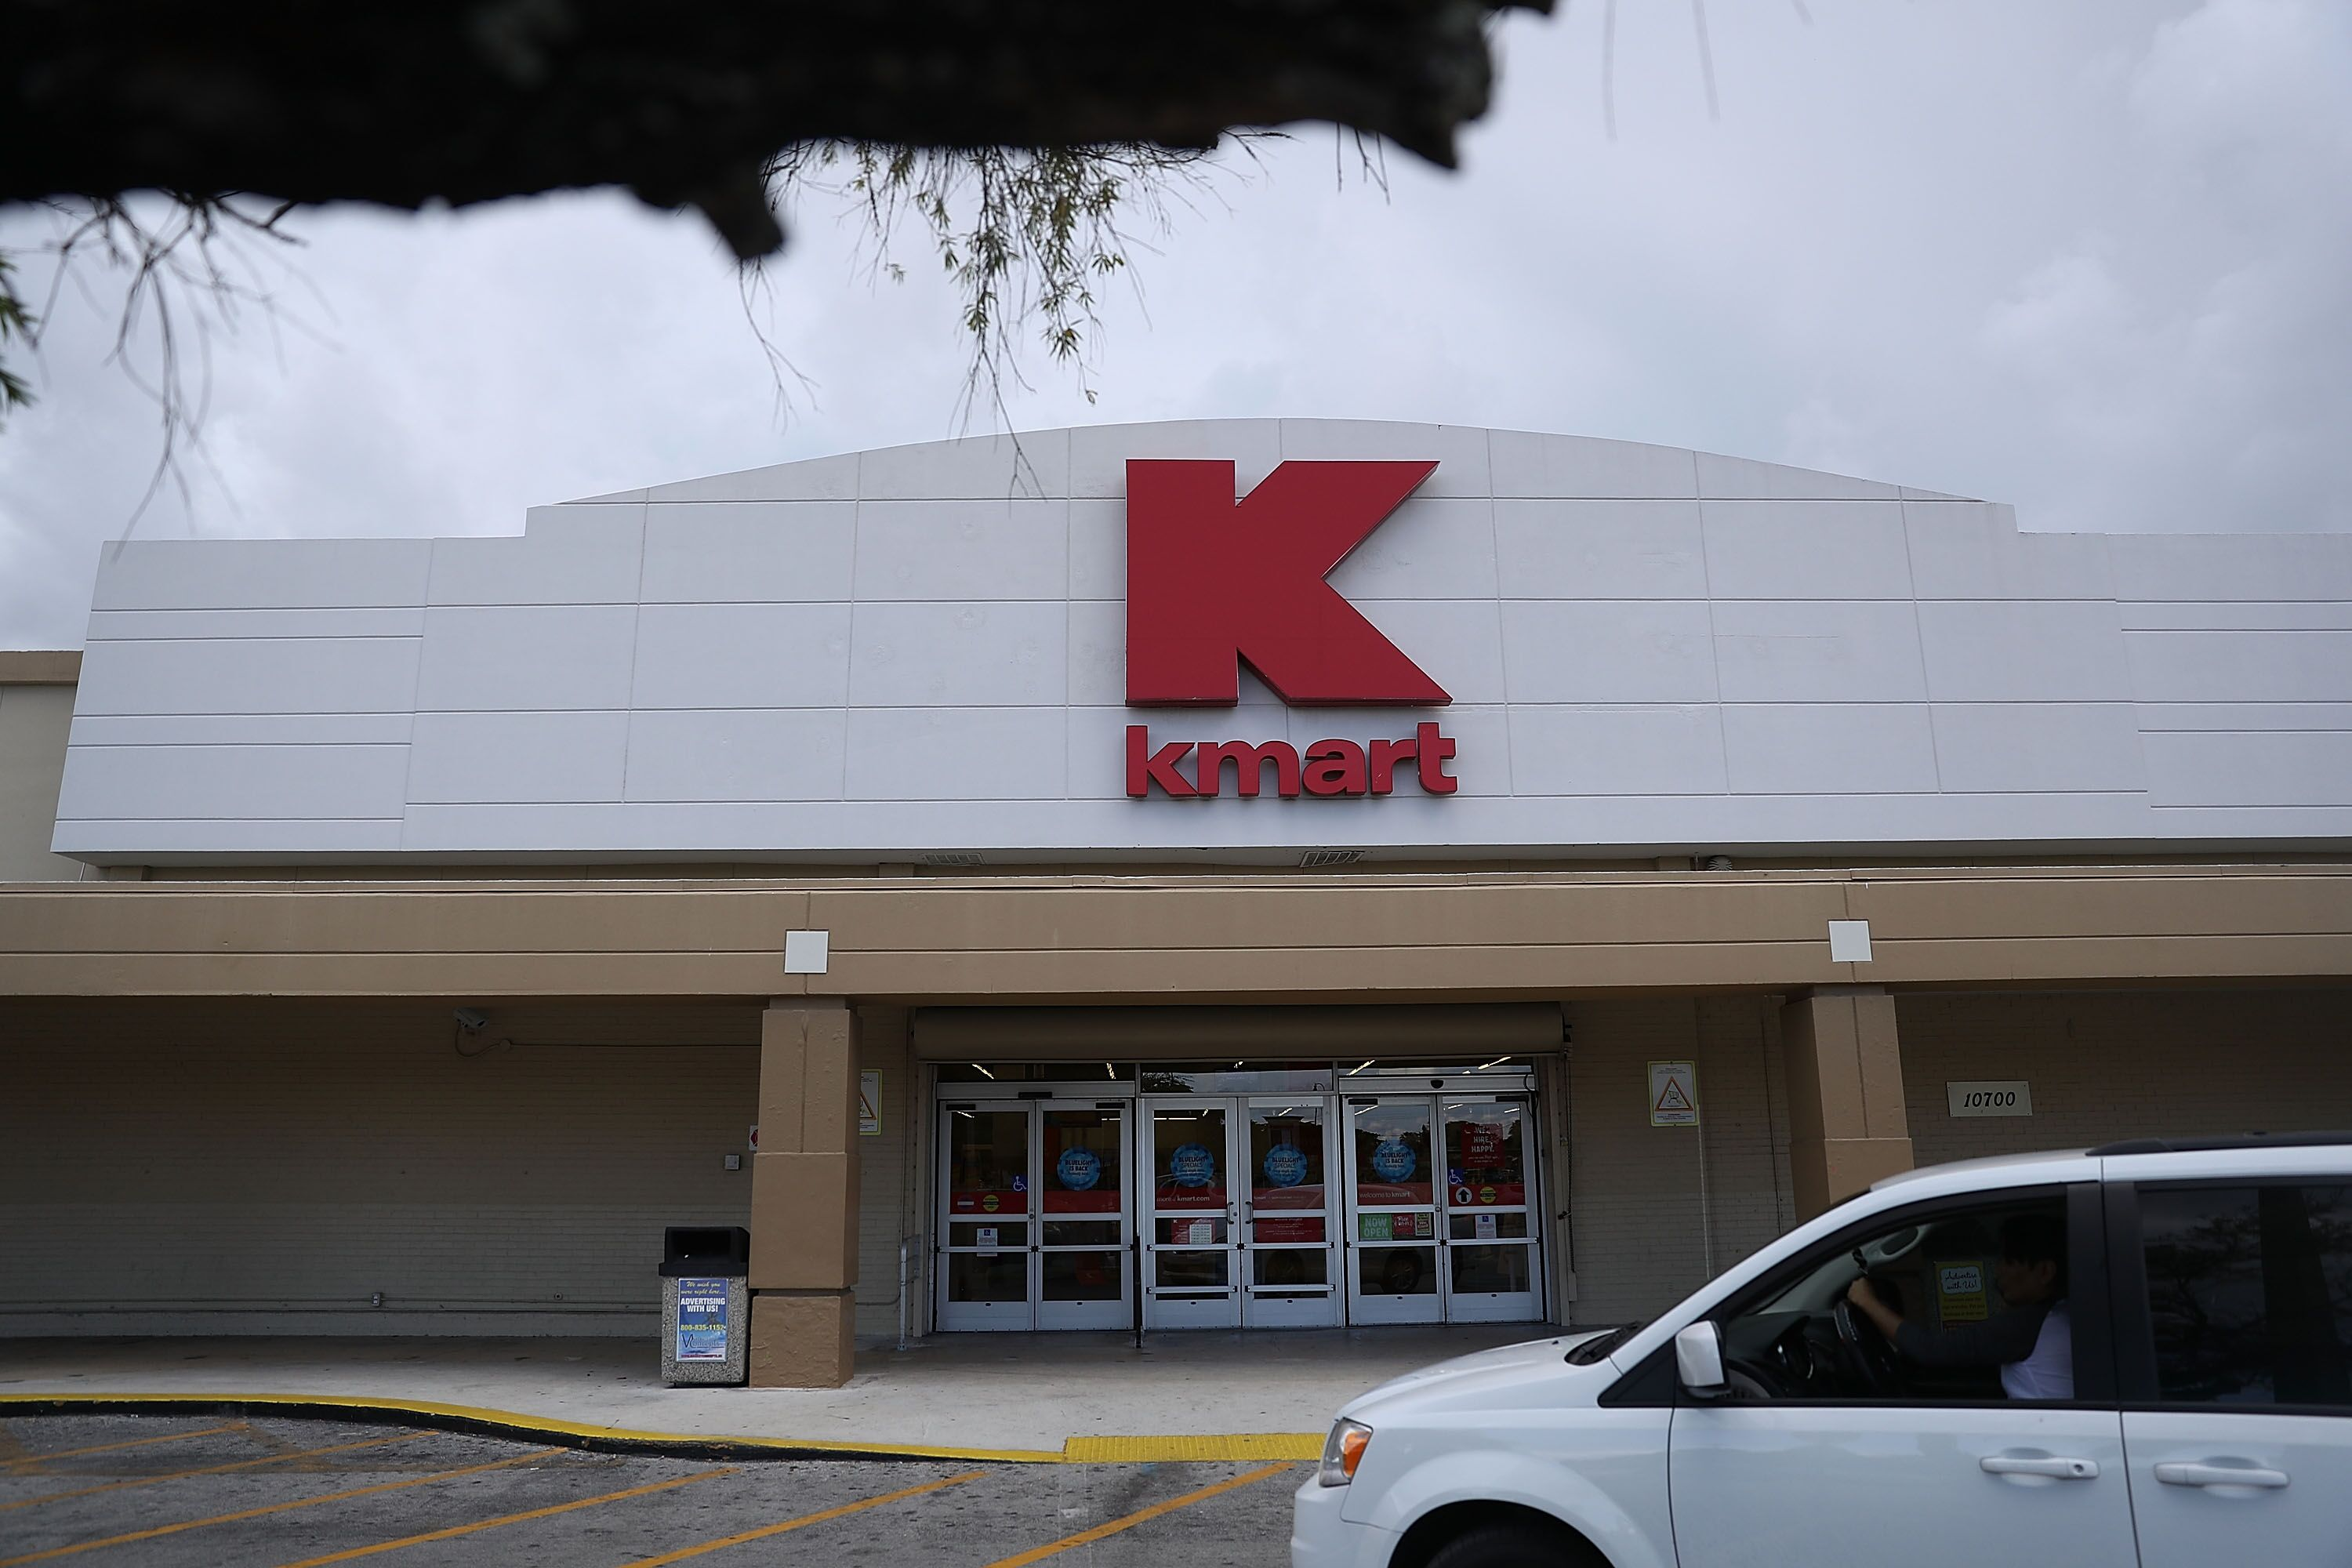 What time does Kmart open the day after Christmas?